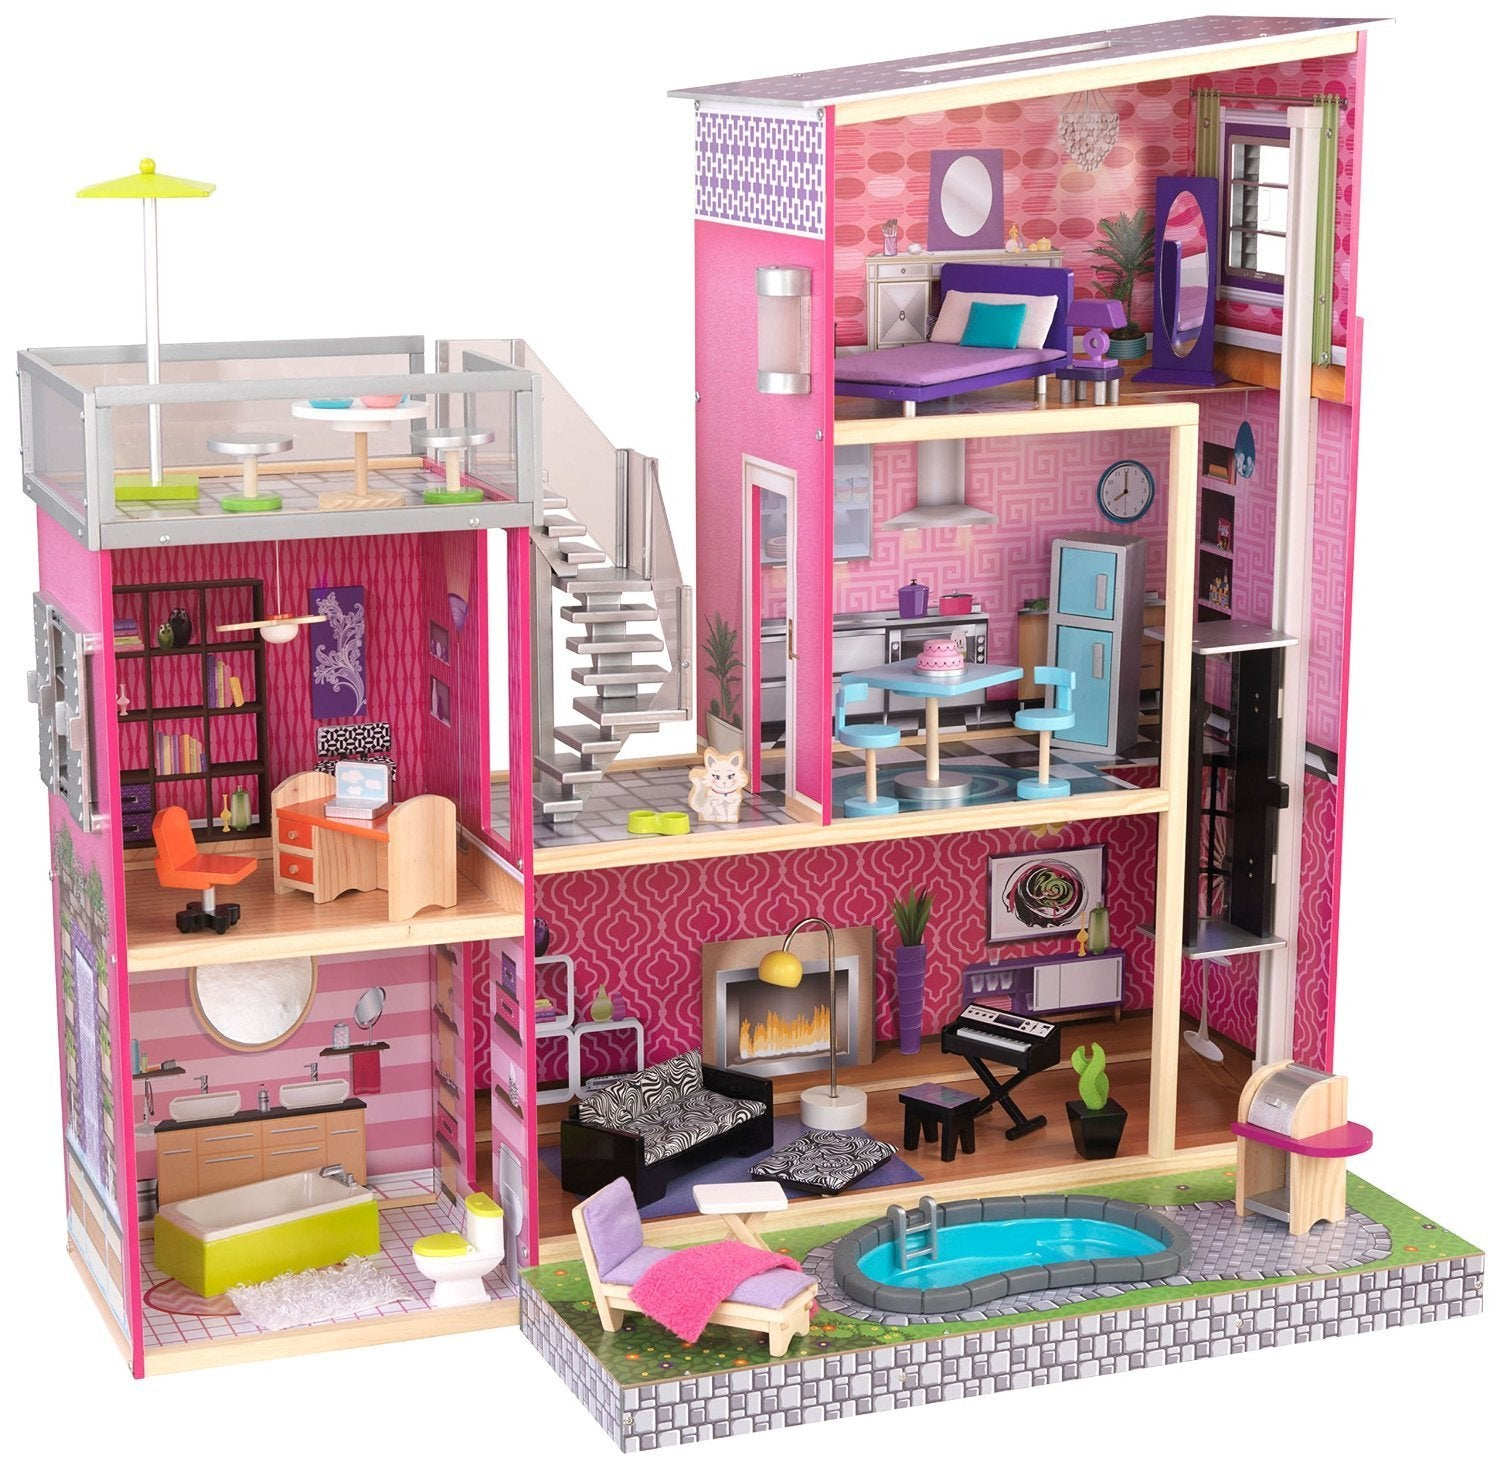 KidKraft 65833 Uptown Dollhouse with Furniture